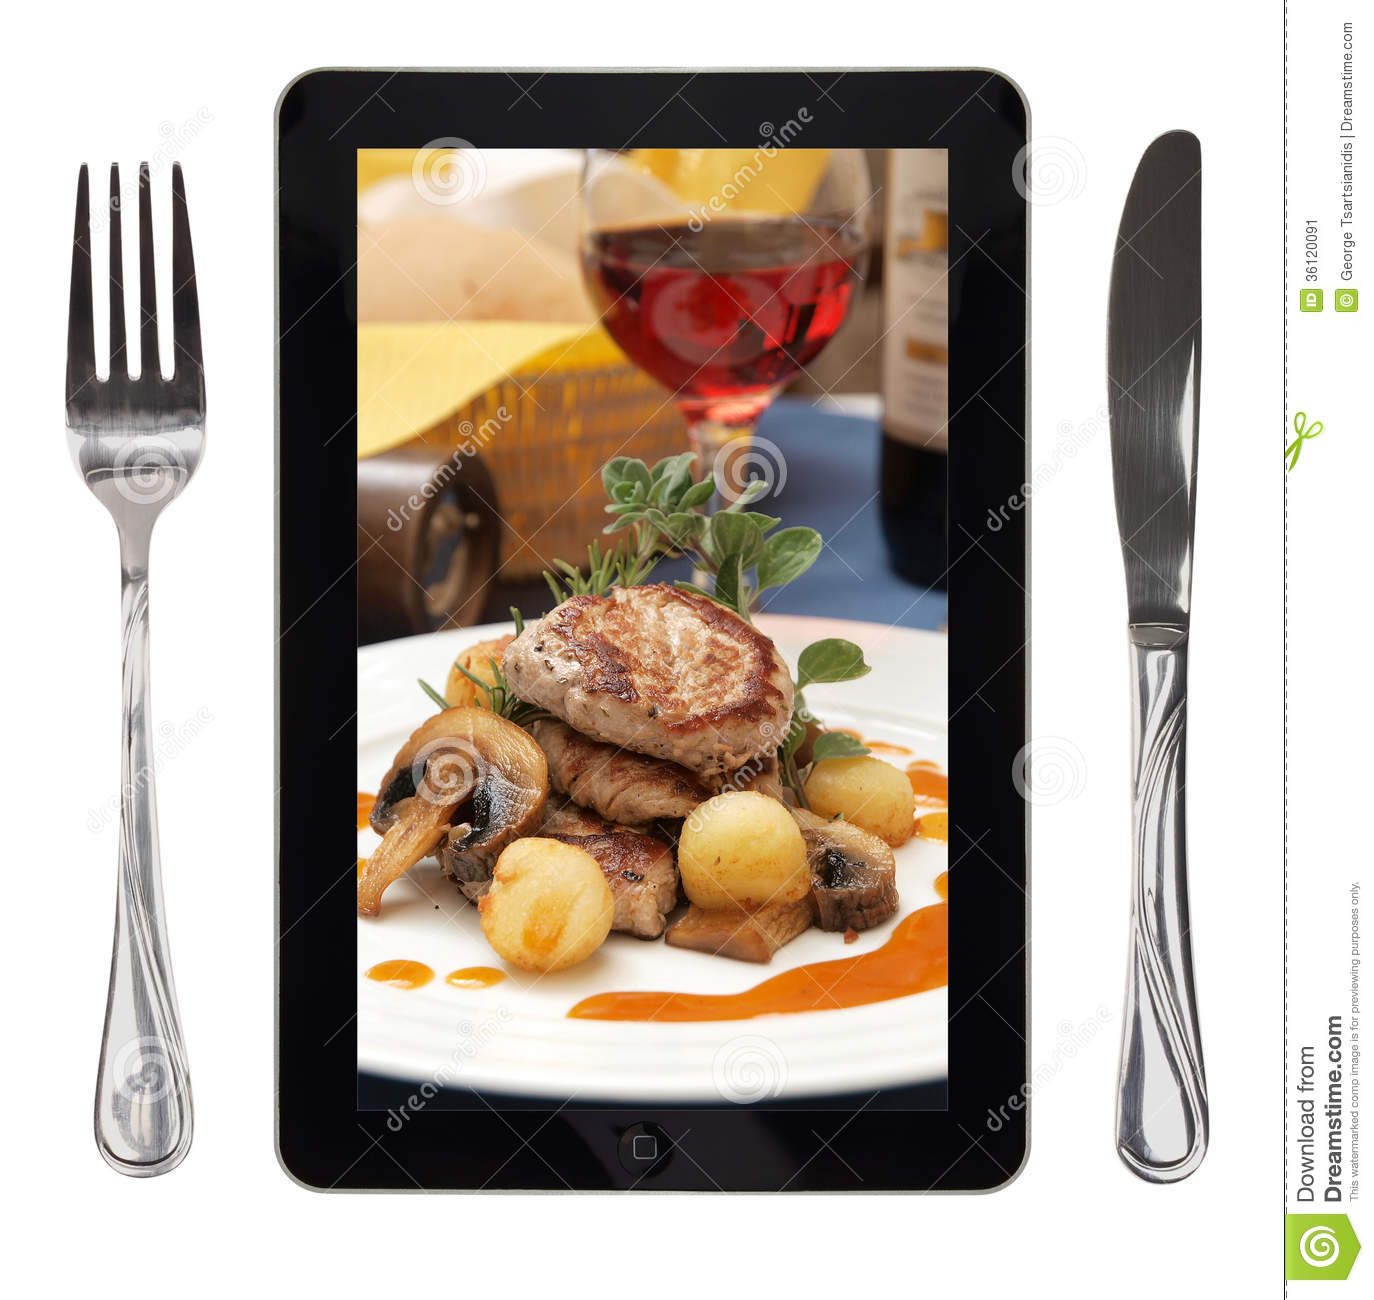 Tablet with food photo